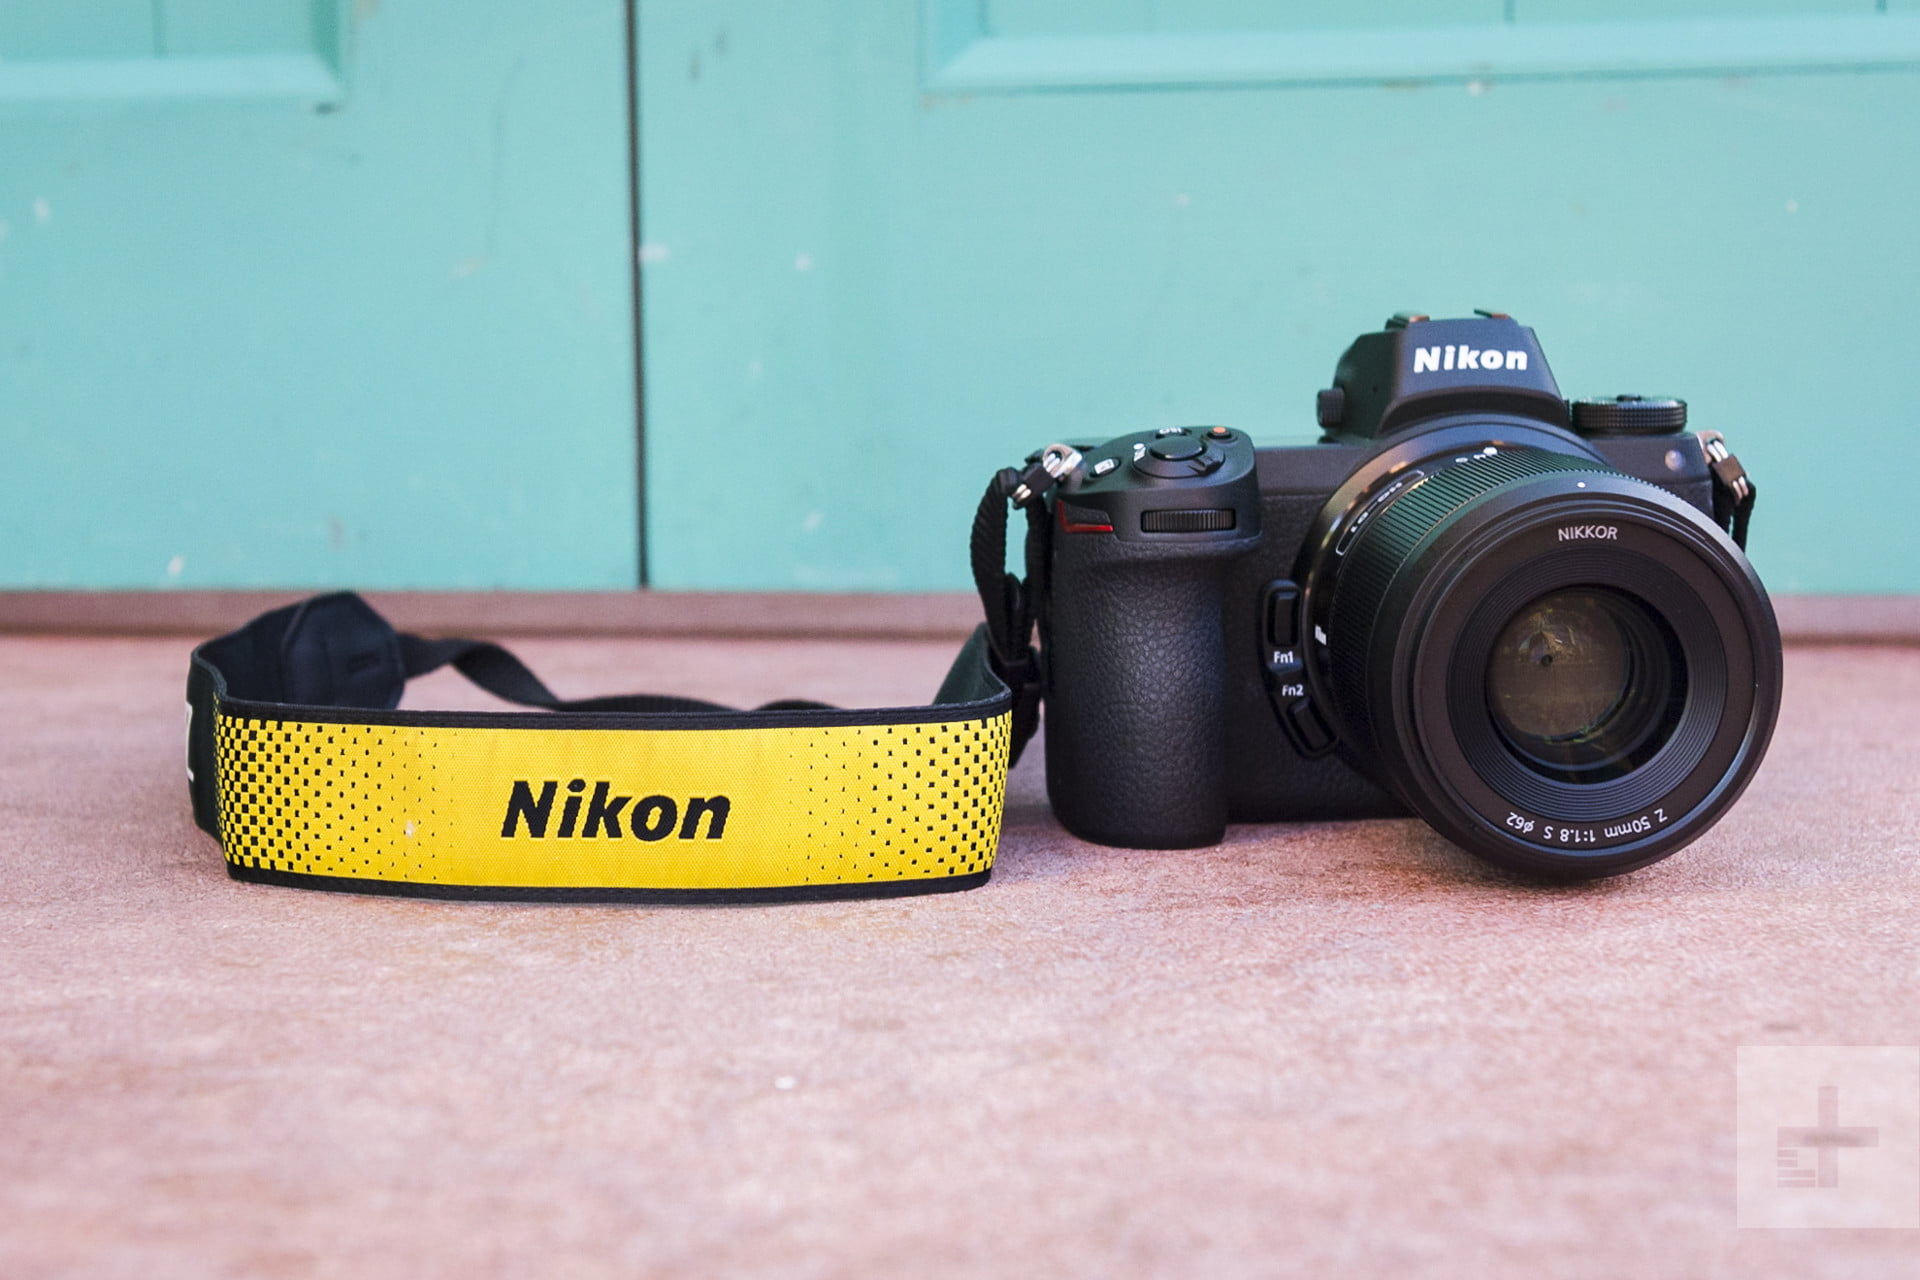 Nikon Z7, Z6 Up to $400 With Sweet New Trade-In Deal